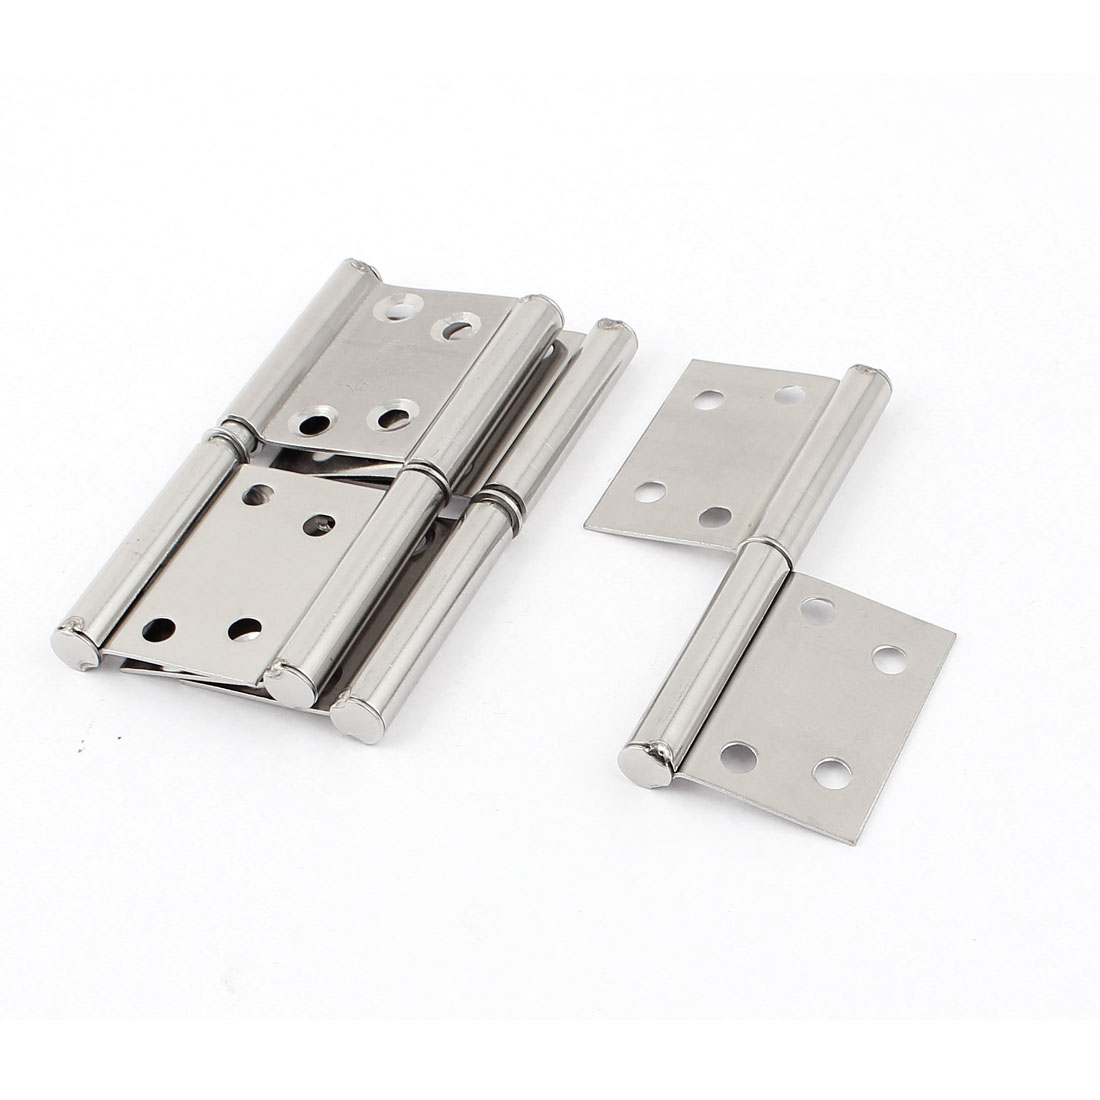 96mmx38mm Stainless Steel Rotatable Door Hinges Silver Tone 4pcs